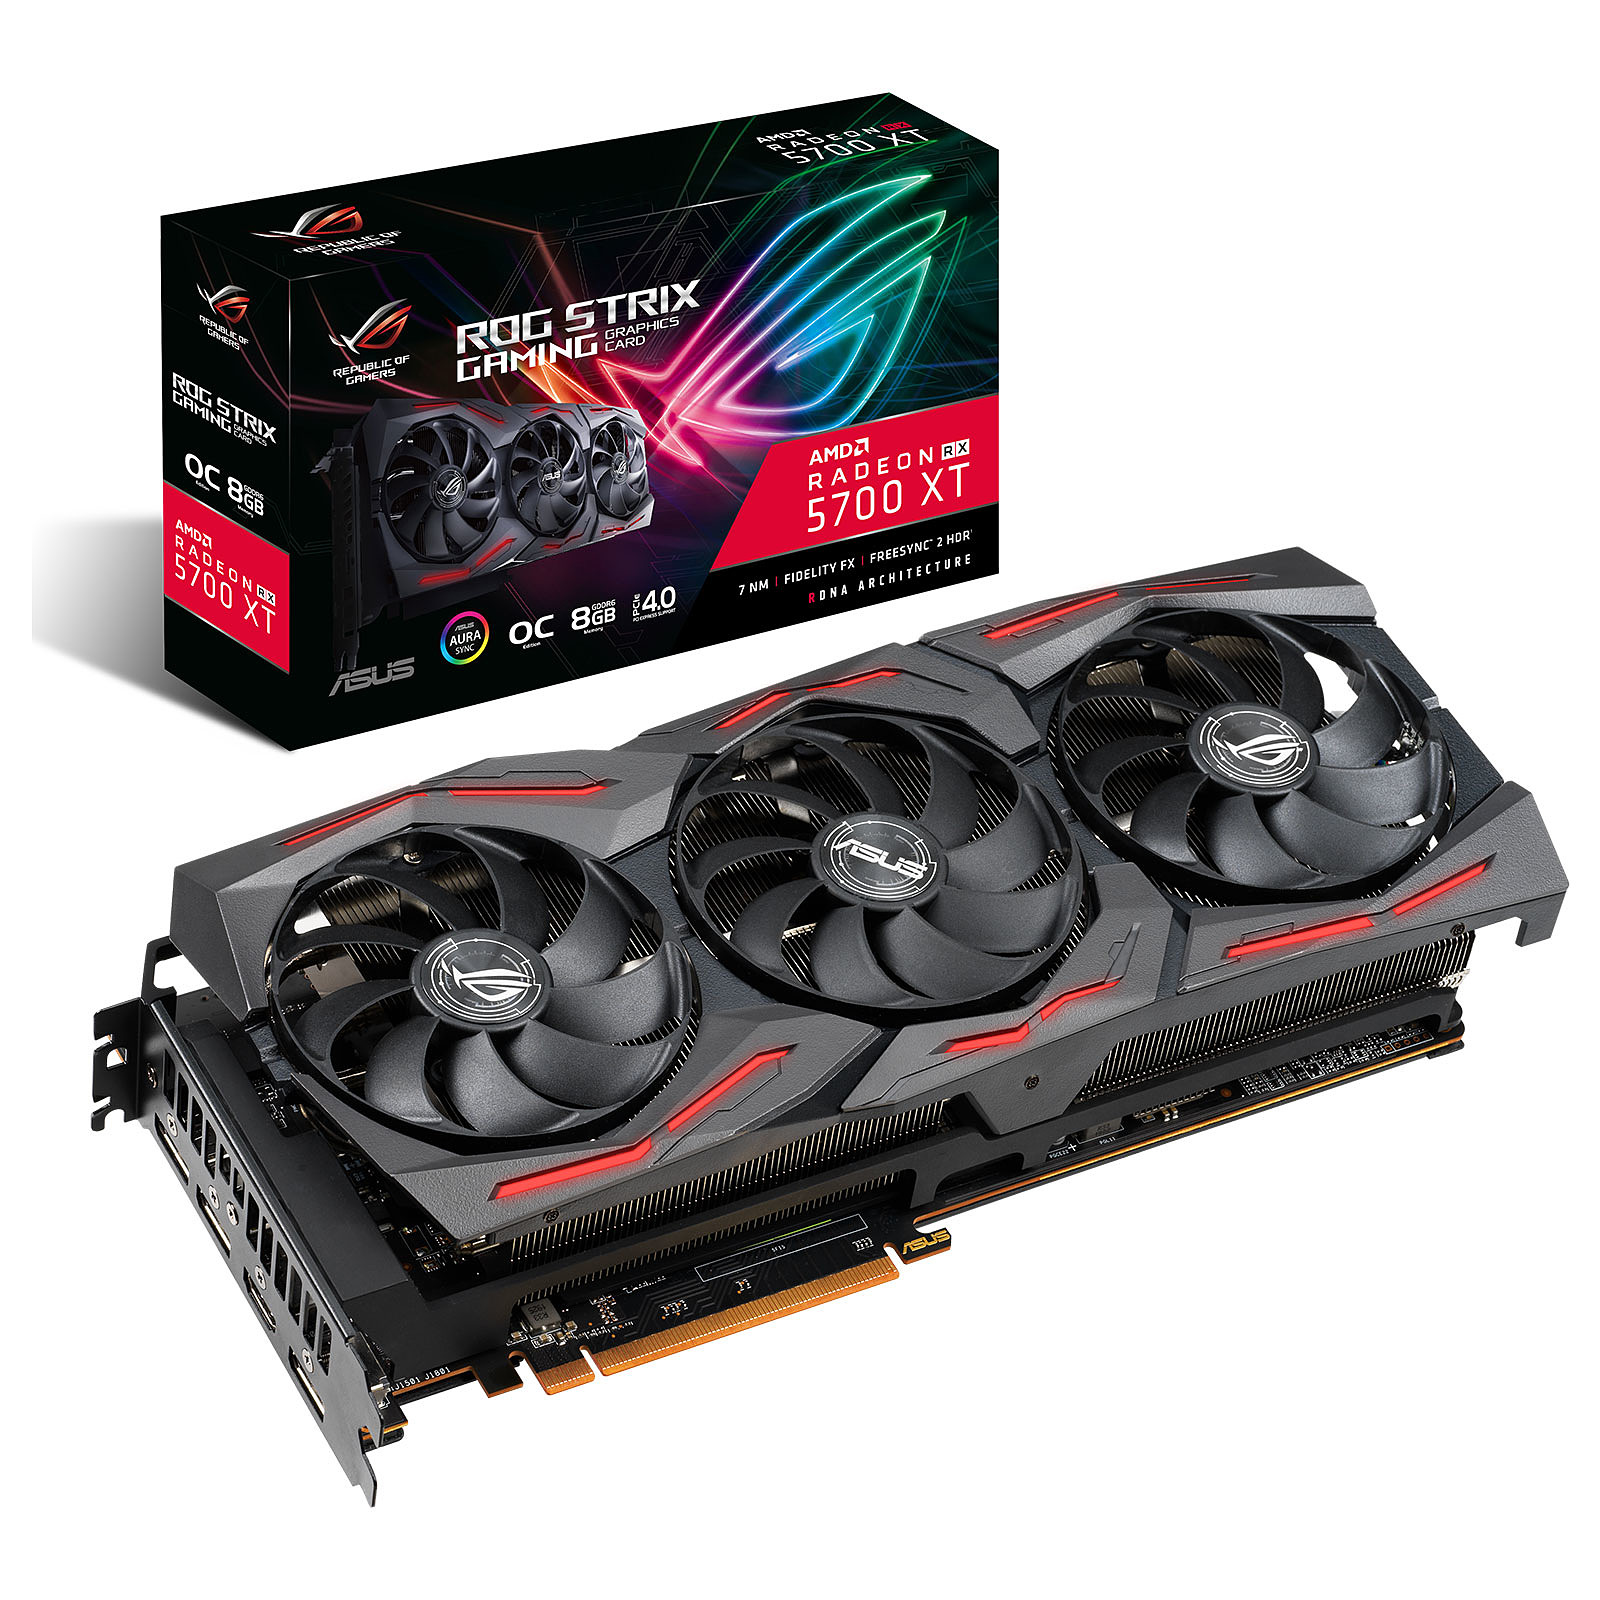 VGA ASUS AMD RADEON ROG-STRIX-RX5700XT-8G-GAMING OC 8GB GDDR6 256-BIT ,Desktop Graphic Card